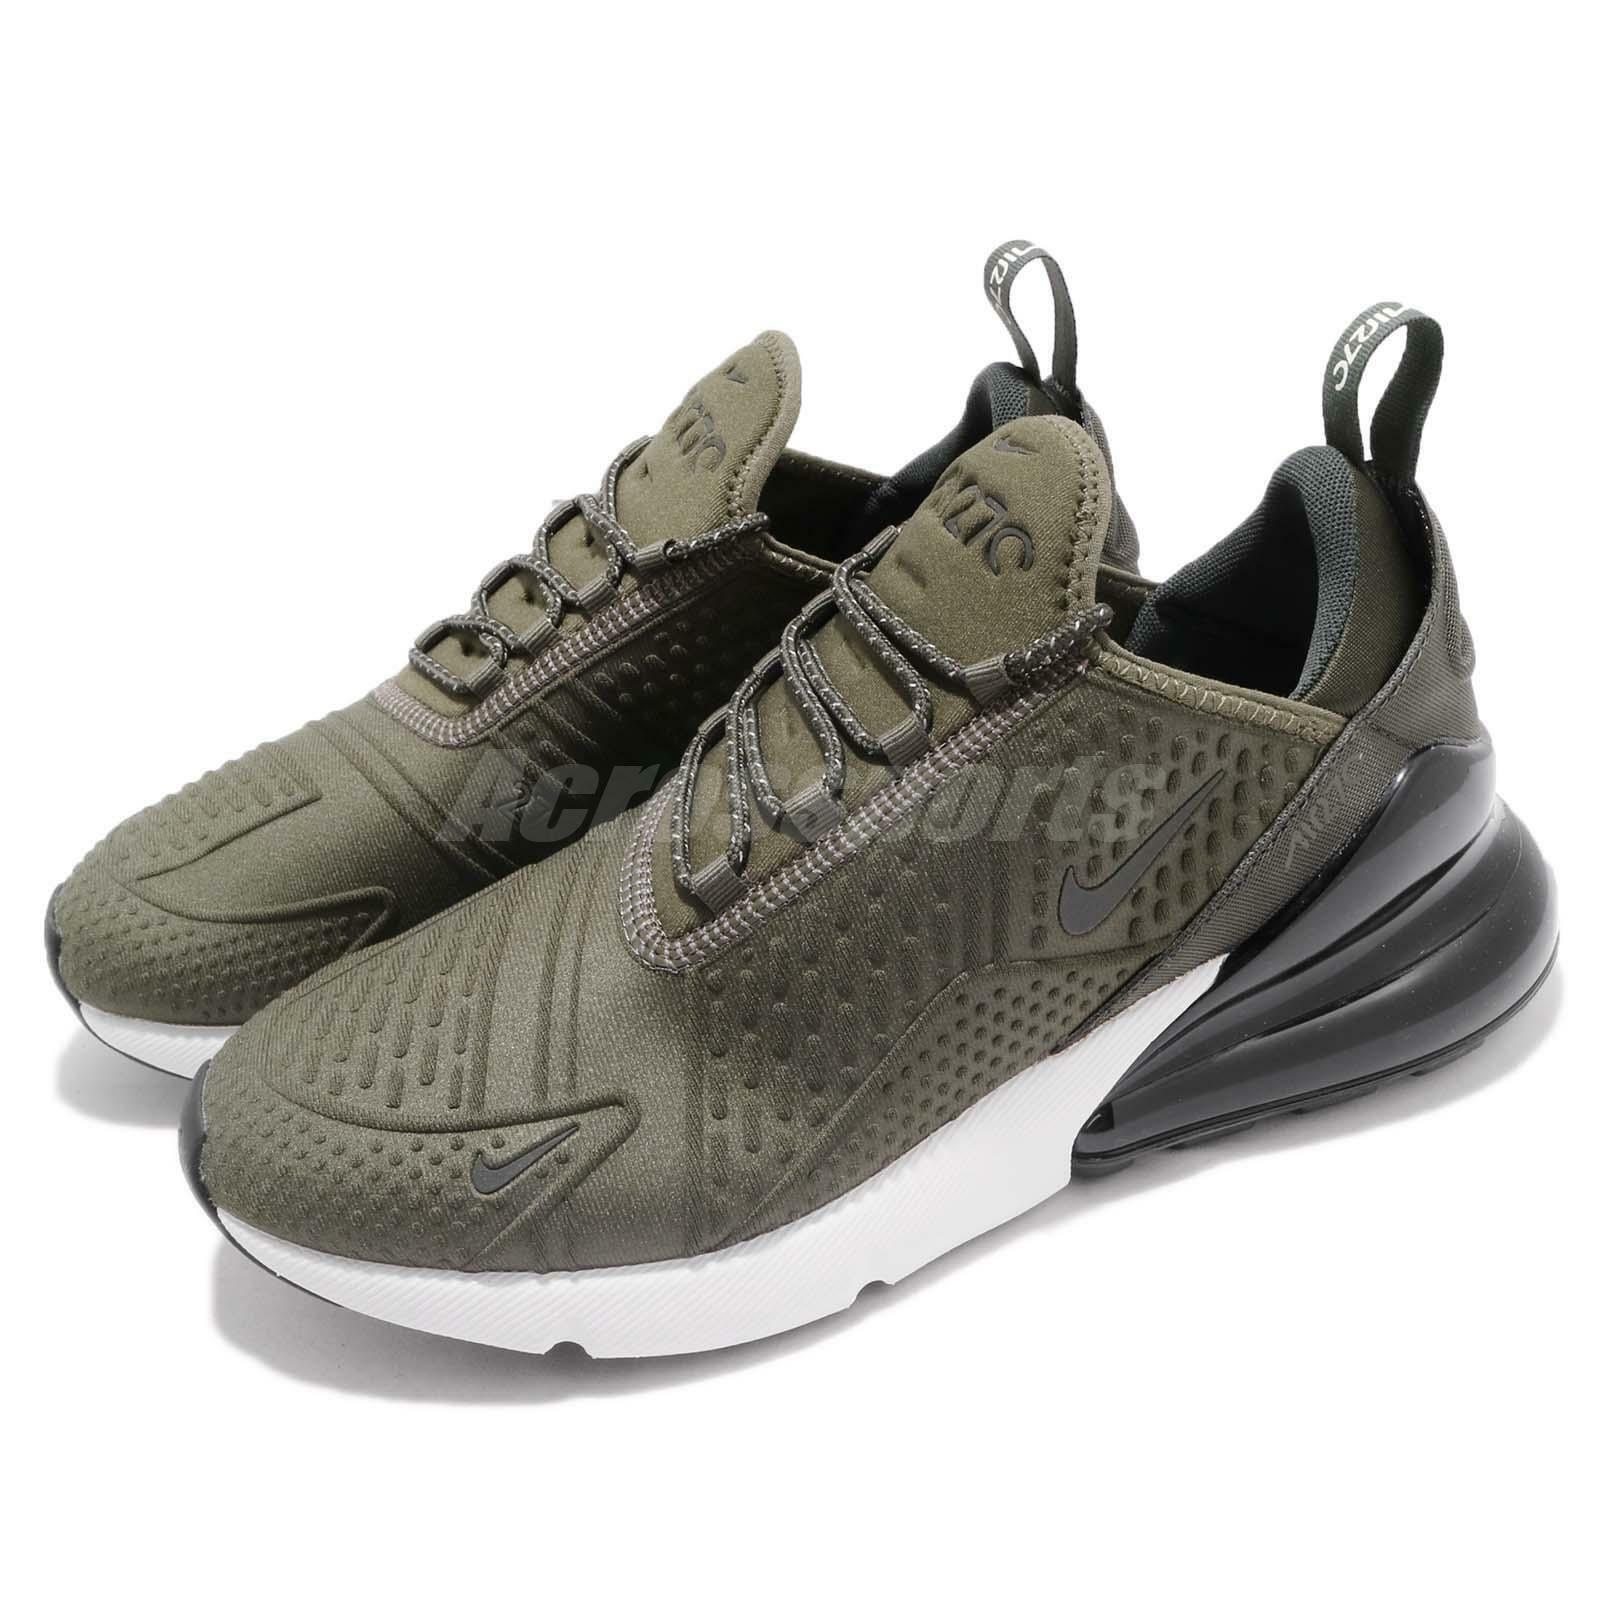 Nike Air Max 270 Uomo Running Shoes Shoes Shoes Lifestyle  Trainers Footwear Pick 1 edf538